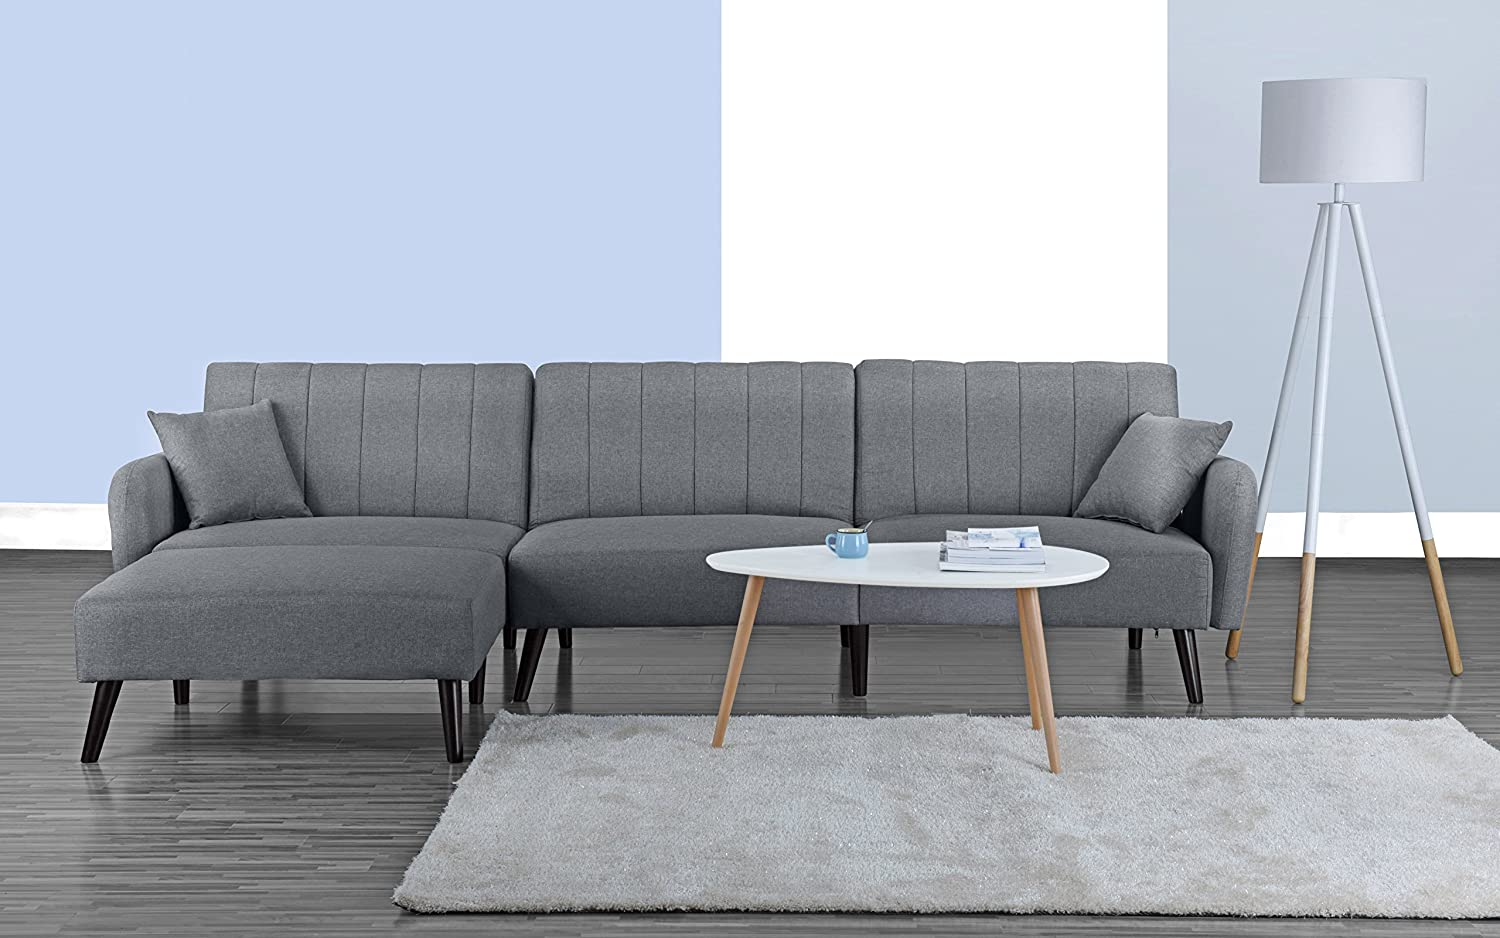 Divano Roma Furniture Mid Century Modern Style Linen Fabric Sleeper Futon  Sofa, Living Room L Shape Sectional Couch with Reclining Backrest and  Chaise ...